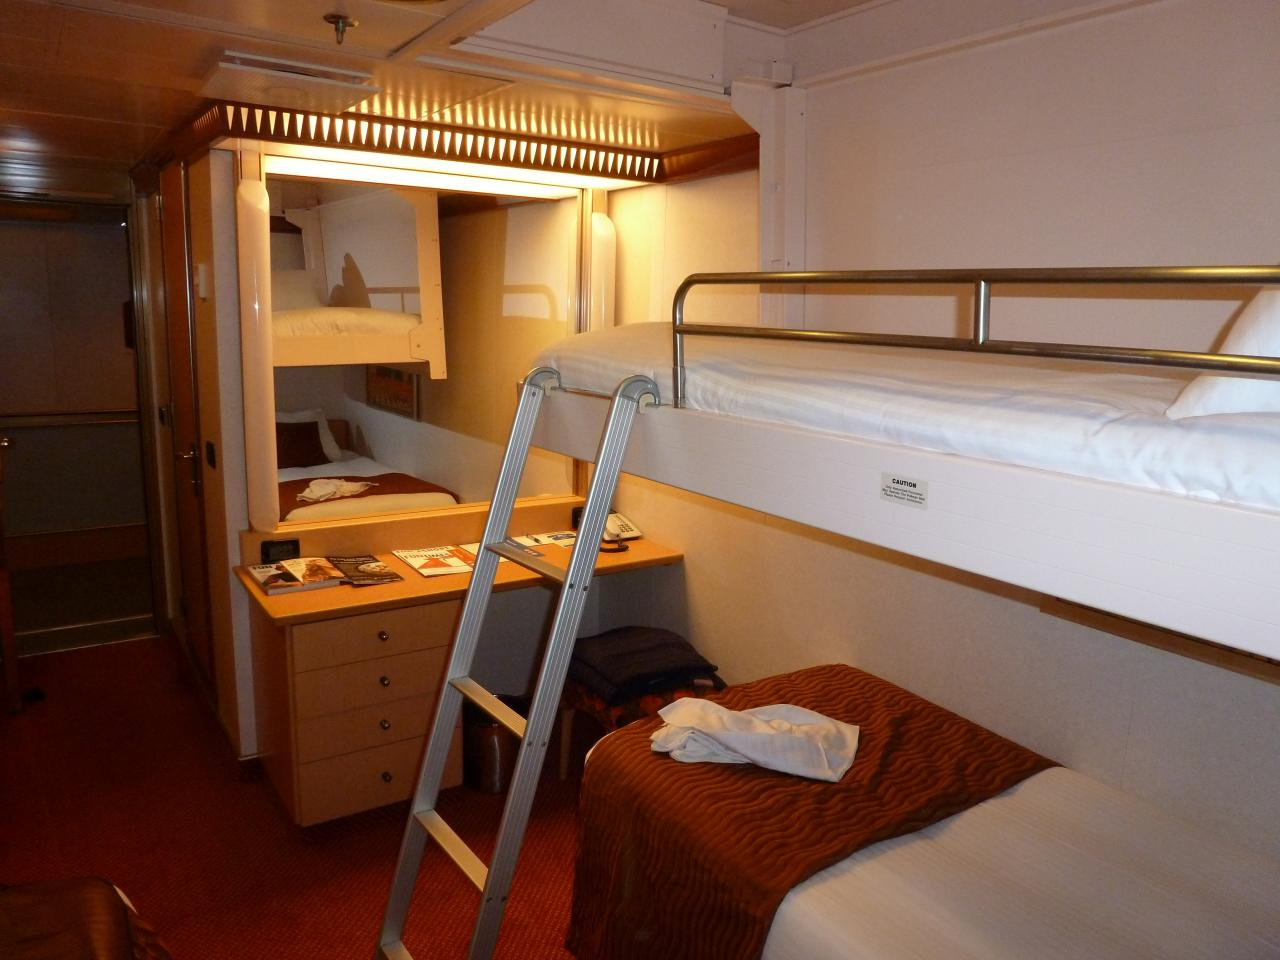 Why are aft staterooms coveted? - CruiseMates Cruise ...